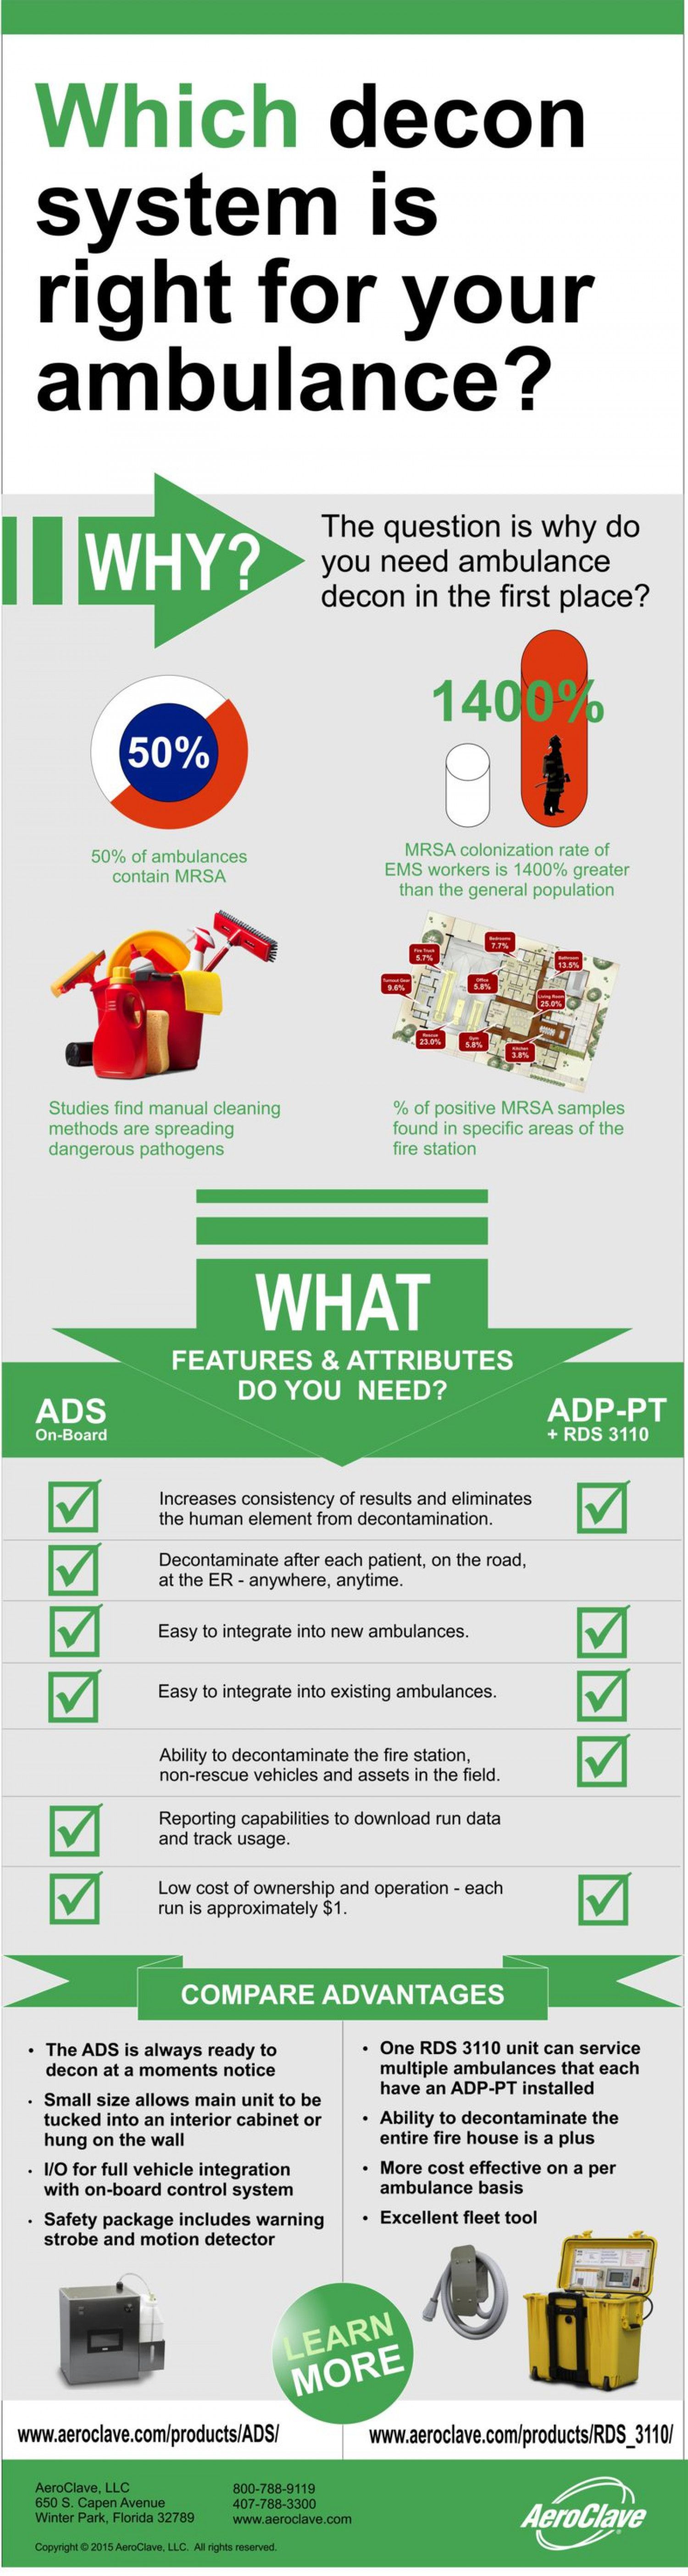 Which decon system is right for your ambulance? Infographic